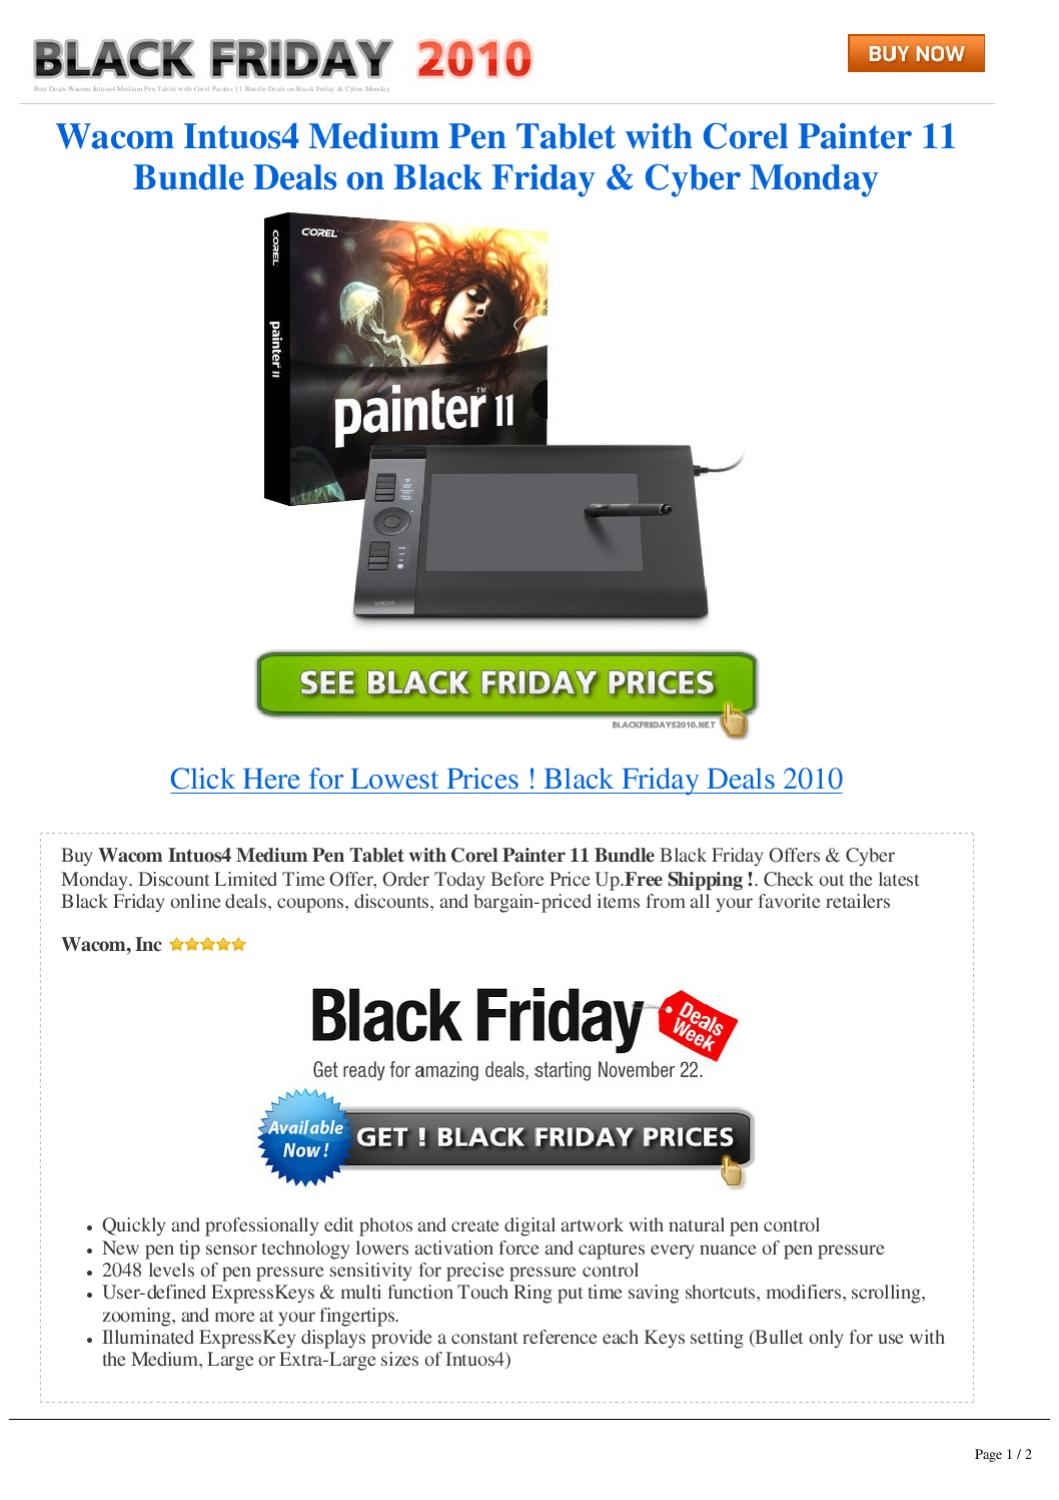 Black Friday Wacom Intuos4 Medium Pen Tablet With Corel Painter 11 Bundle Deals On Black Friday C By Steven Common Issuu